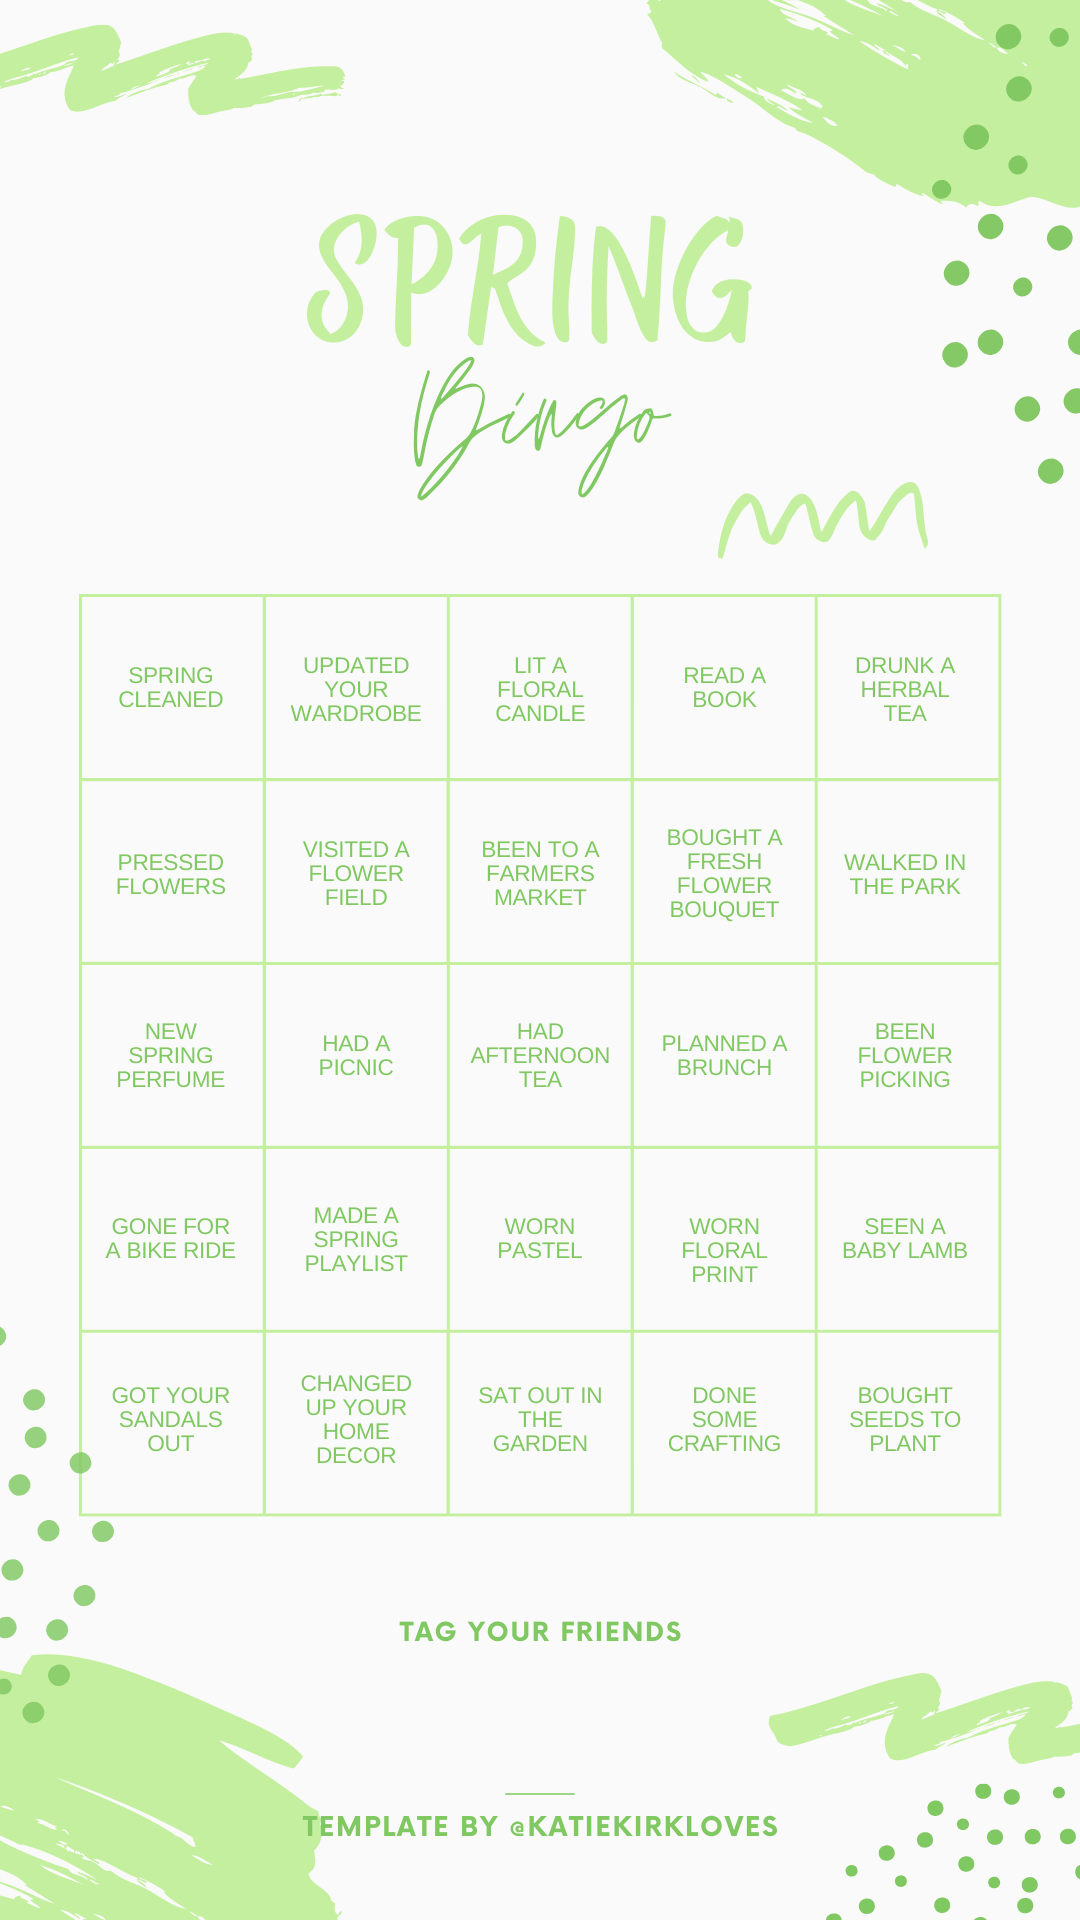 Instagram Story Templates by UK Creator Katie Kirk Loves. These are Spring themed templates you can use for fun, you share them on your Instagram story, fill them in and share with friends. They include Spring themed this or that, spring bingo and which spring flower are you?